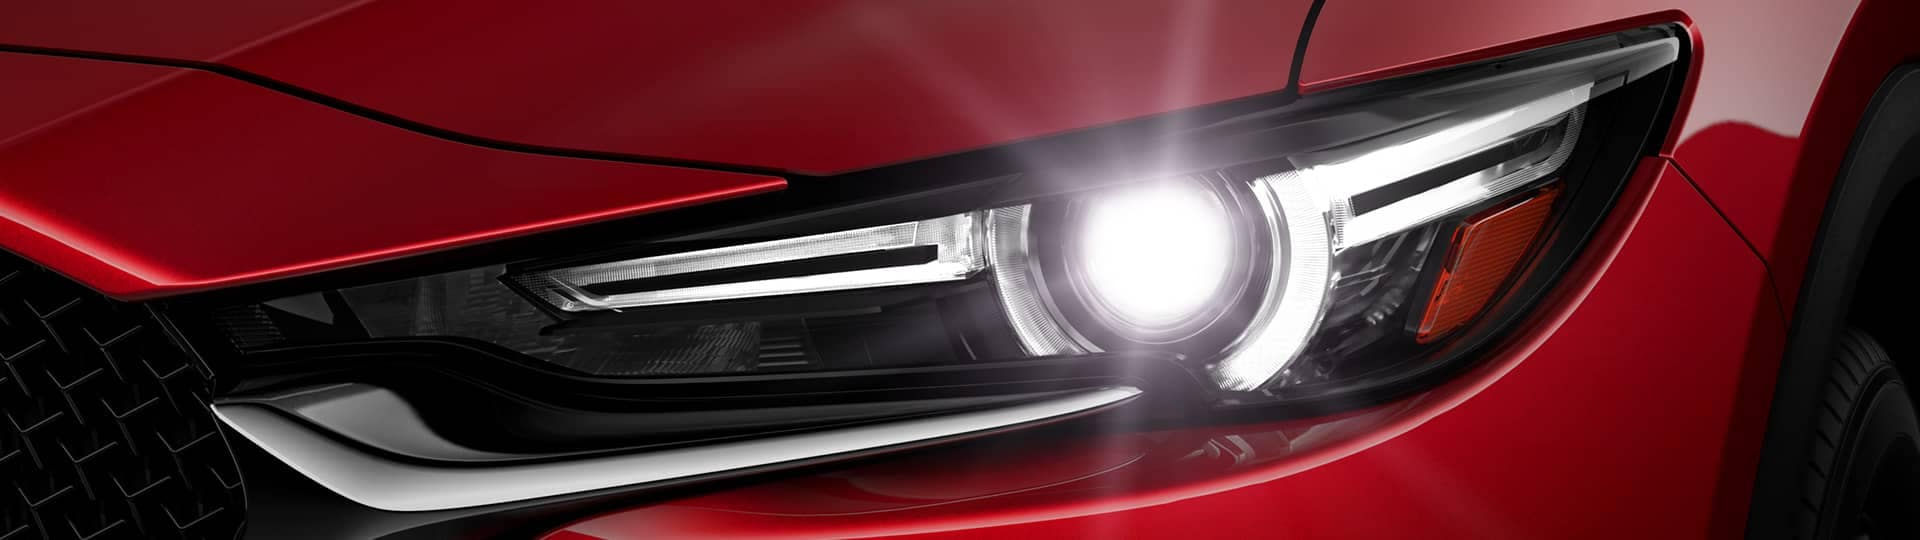 2018 Mazda CX5 Canada Headlight